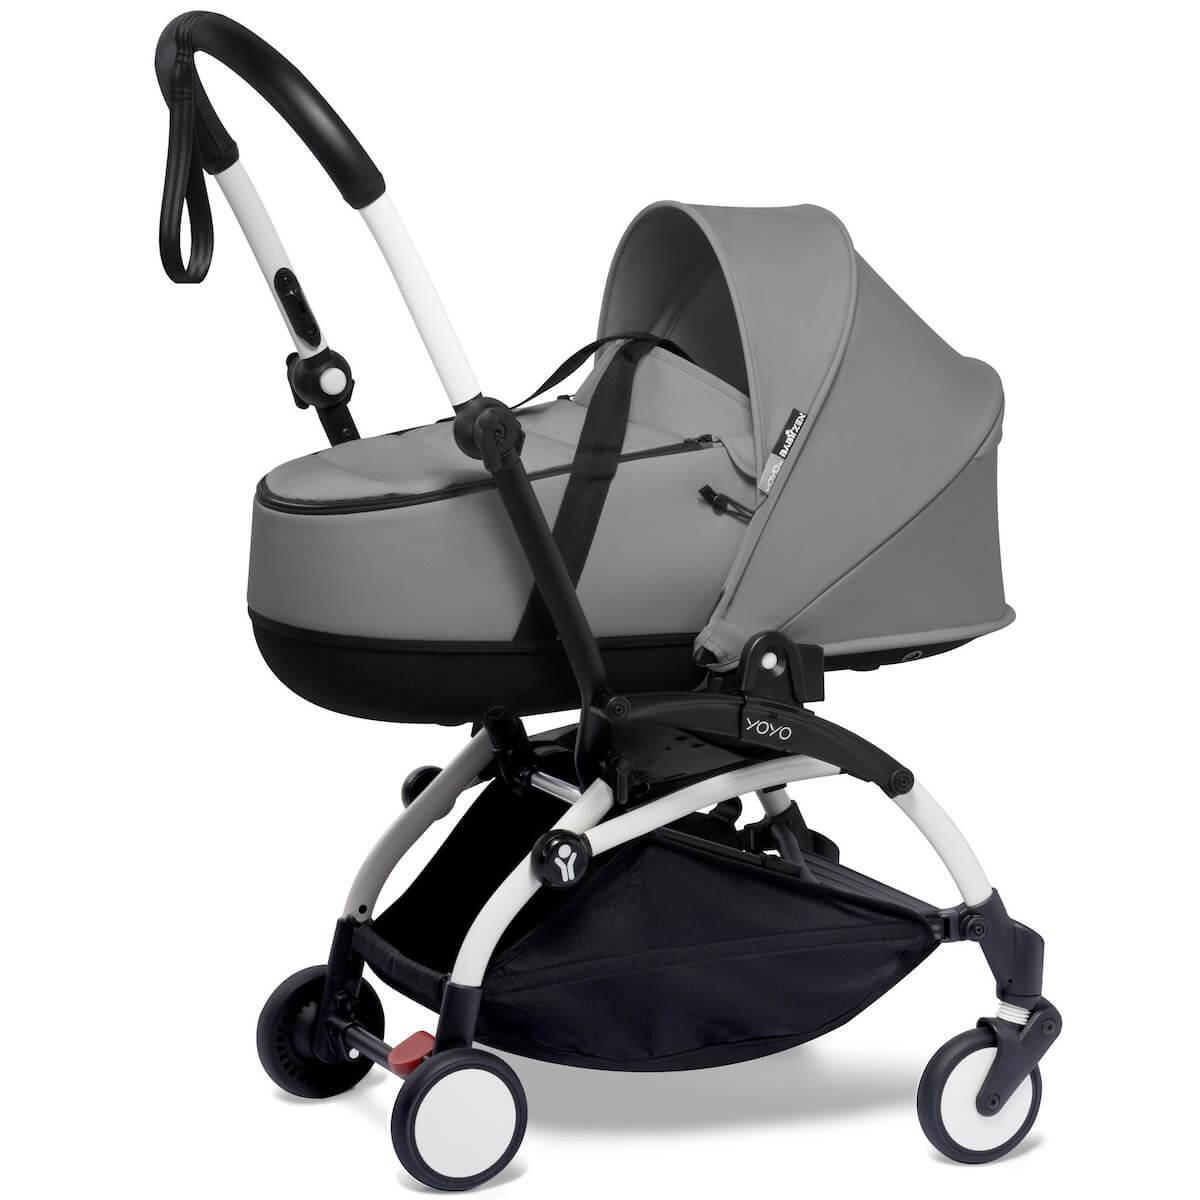 Kinderwagen BABYZEN YOYO²  all-in-one Wanne/Autositz/6+ weiß-grau